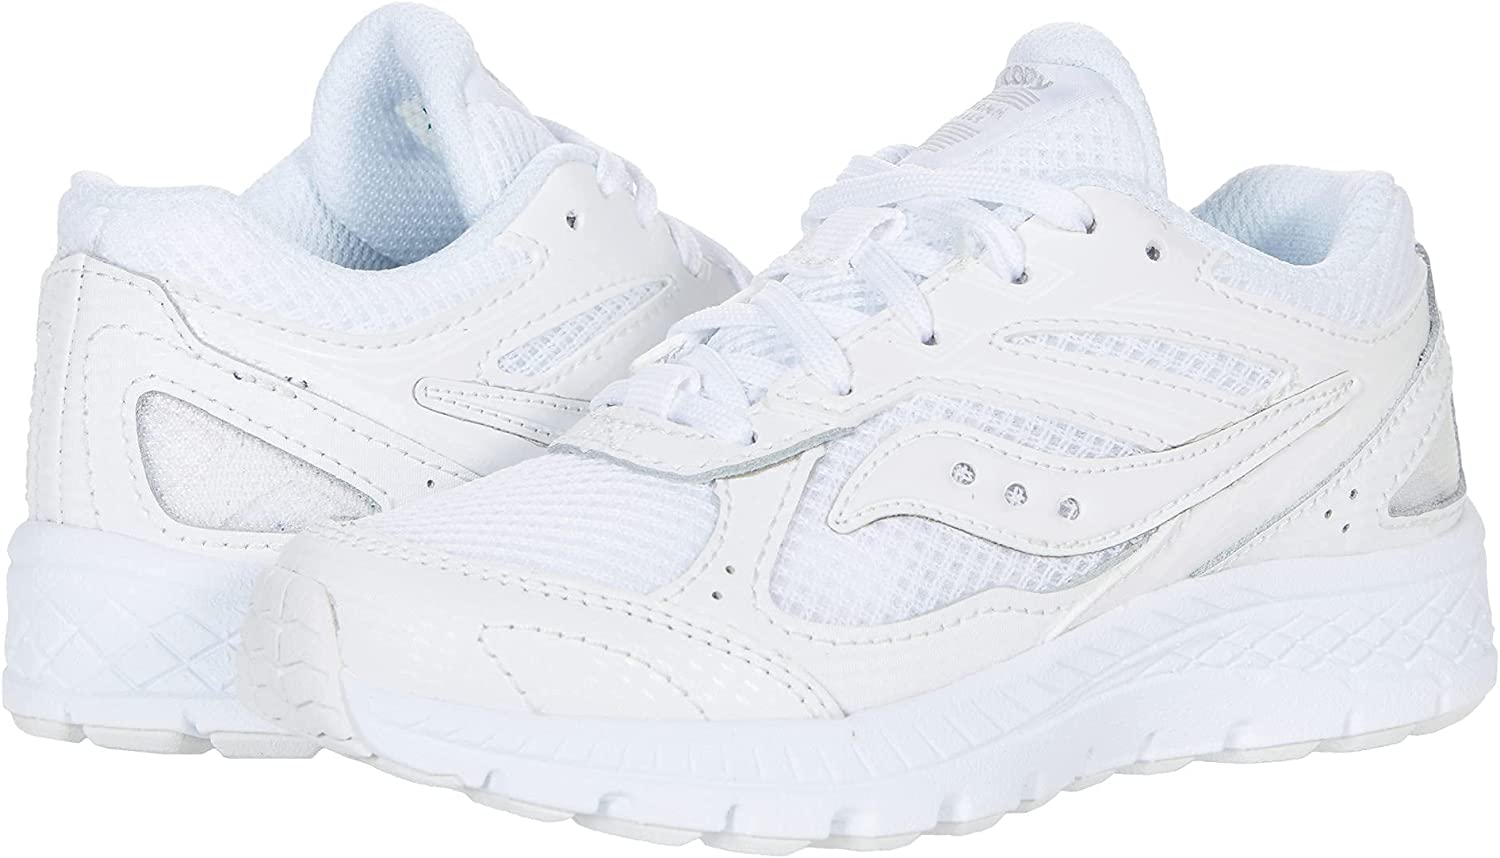 Saucony Cohesion 14 LACE to Toe Running Shoe, White, 2.5 Wide US Unisex Big_Kid